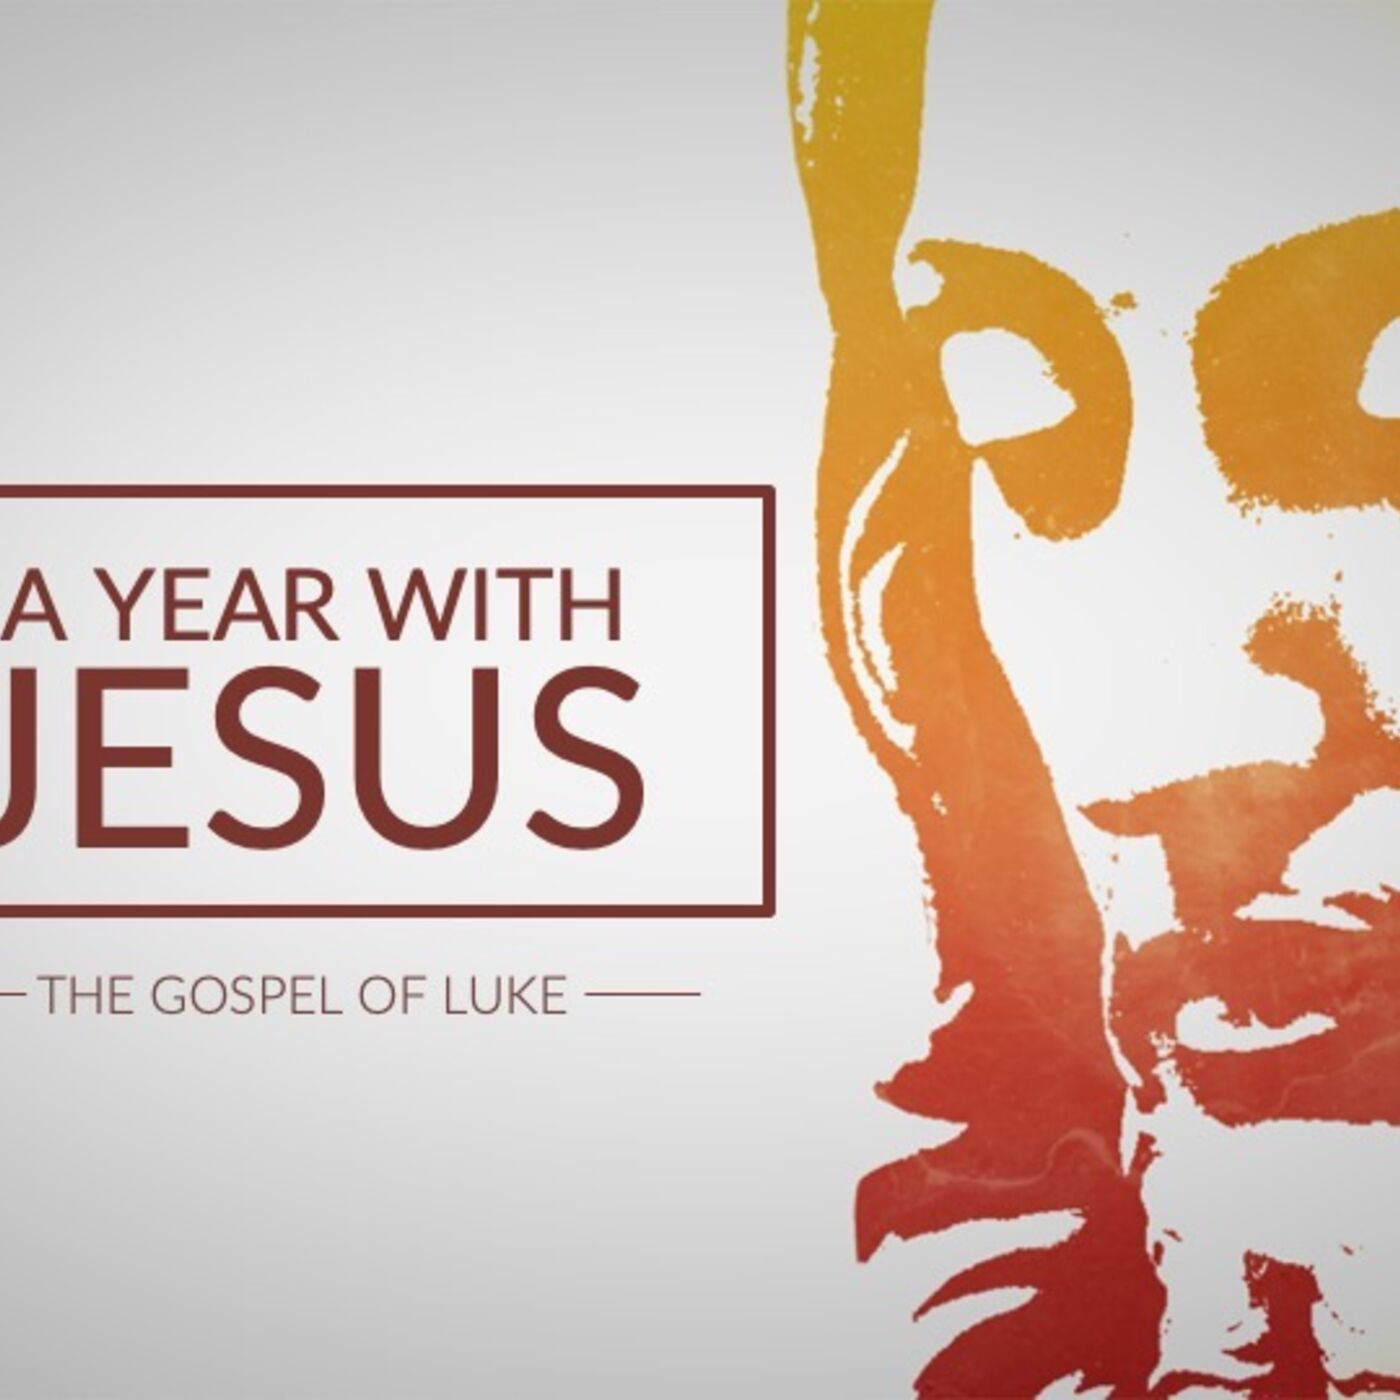 A Year With Jesus: Lessons on Devotion (Luke 10:38-42)